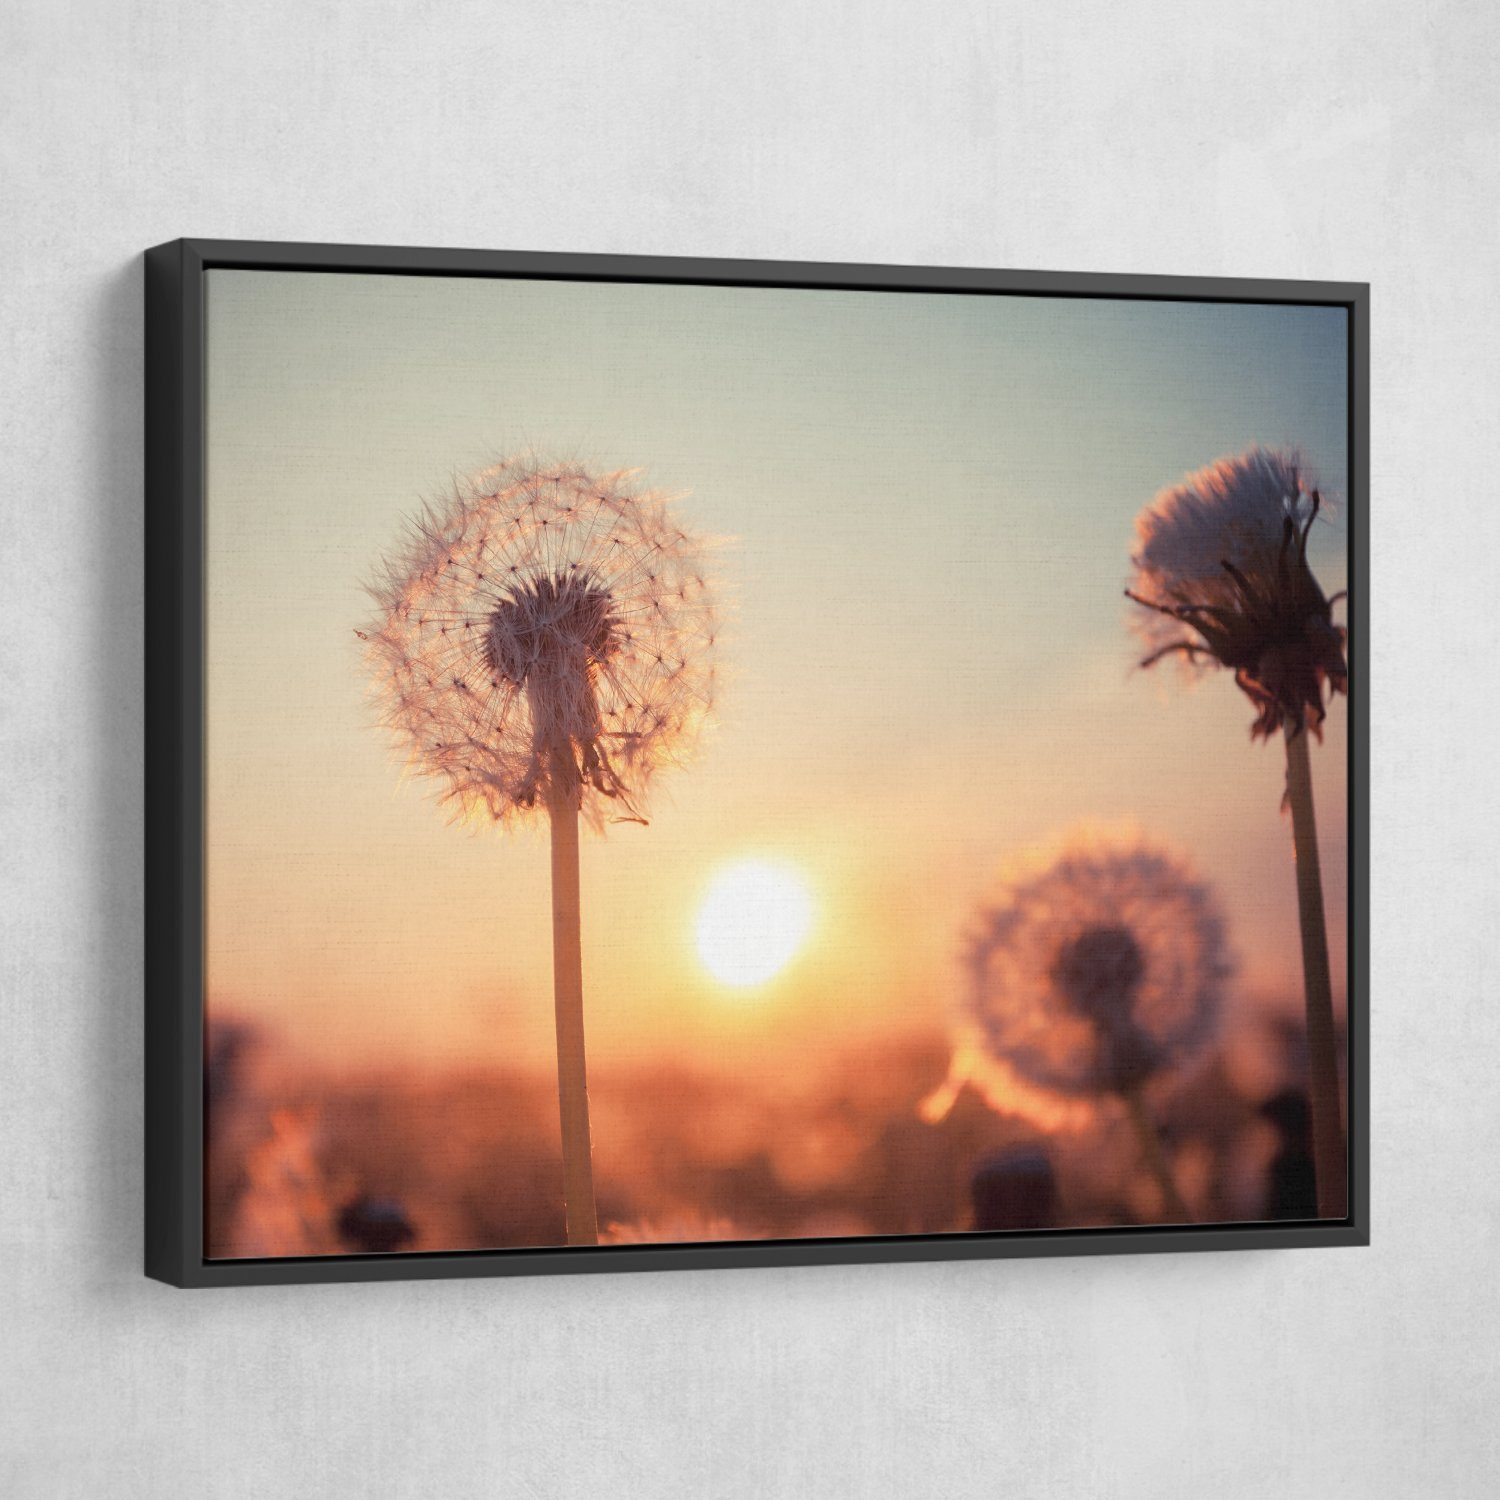 Dandelions at Sunset wall art black frame